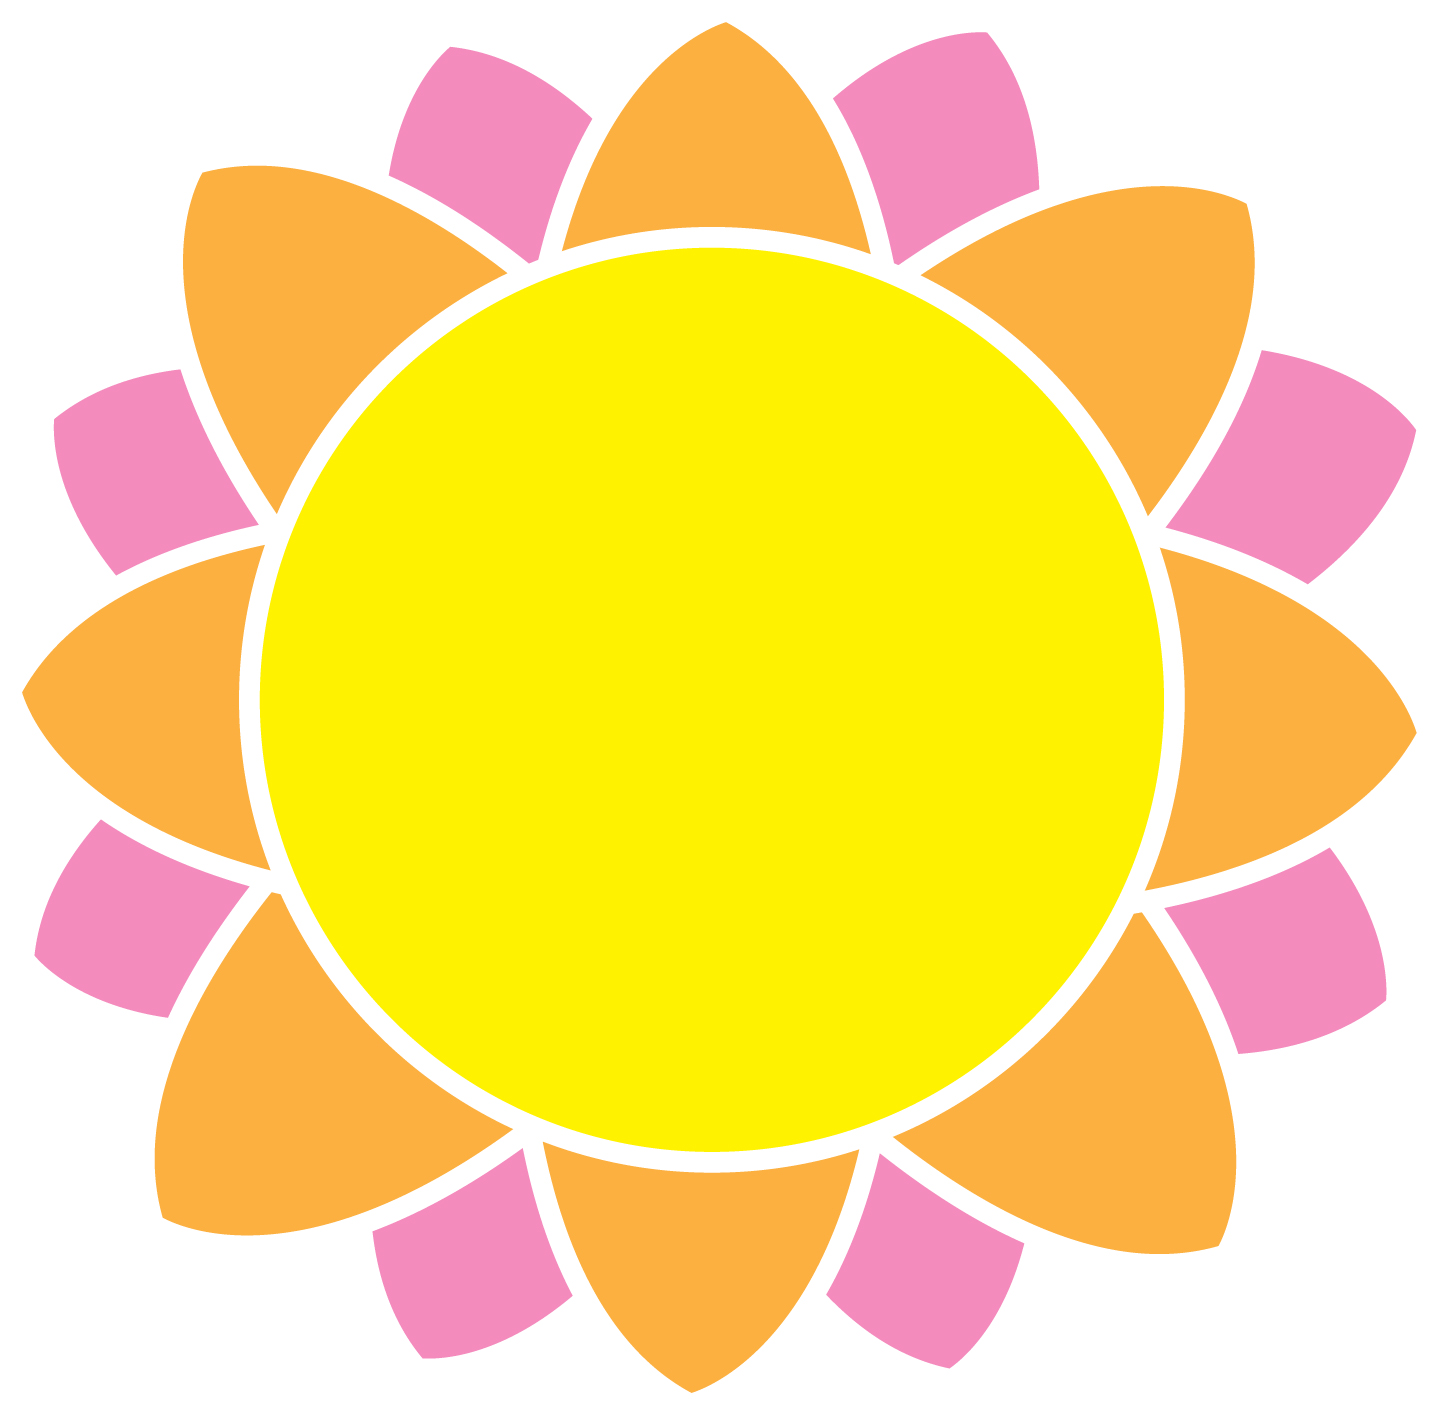 logo quiz answers yellow flower - 28 images - what logo ...